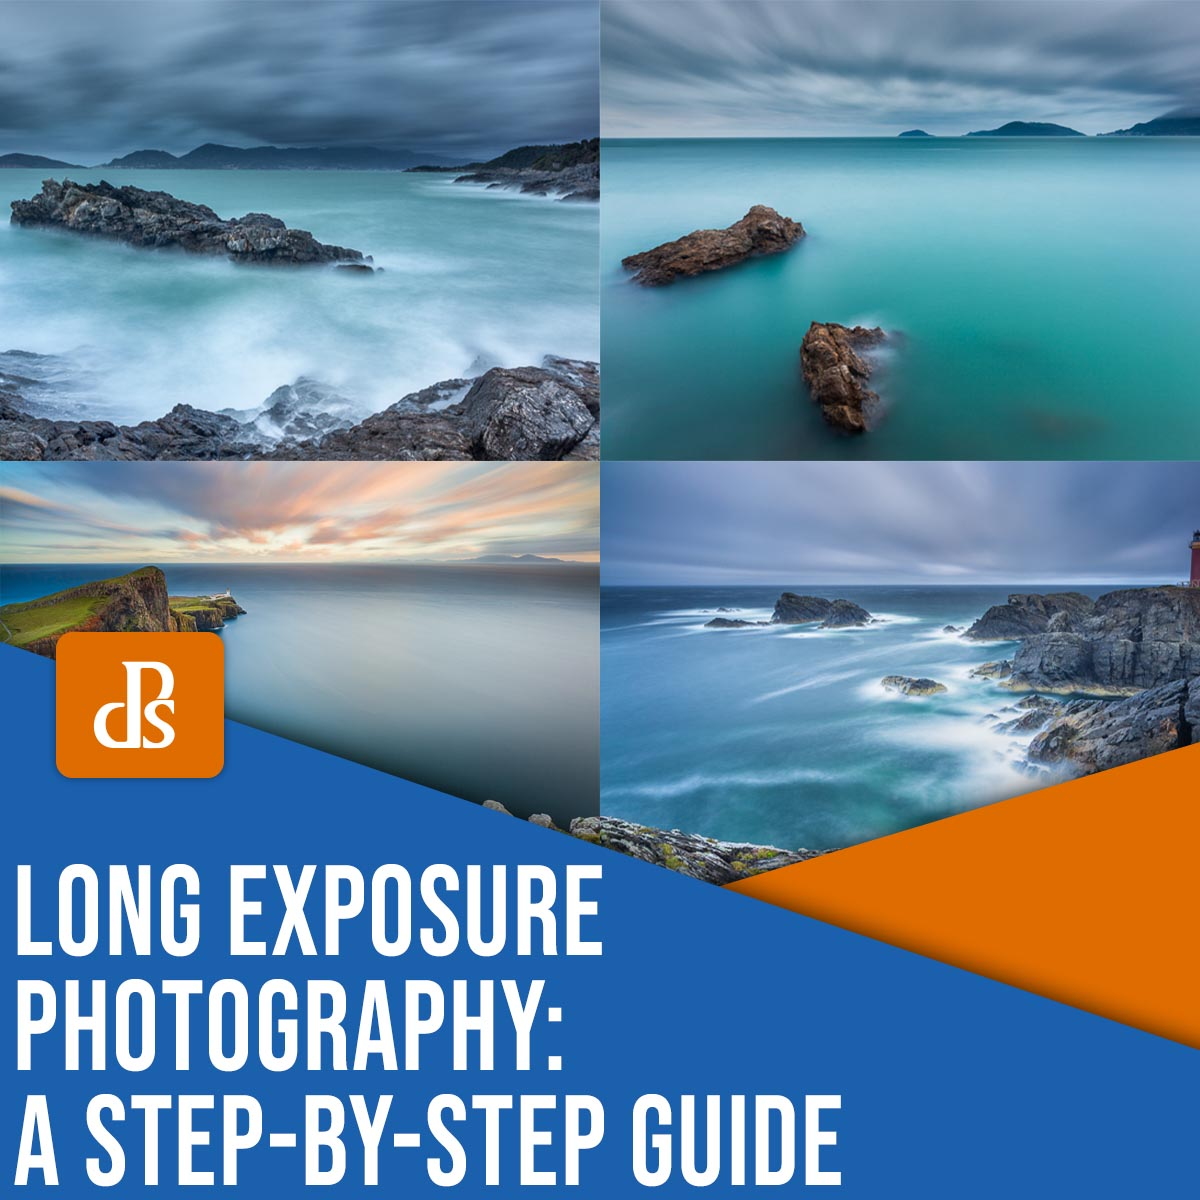 Long Exposure Photography: A Step-by-Step Guide